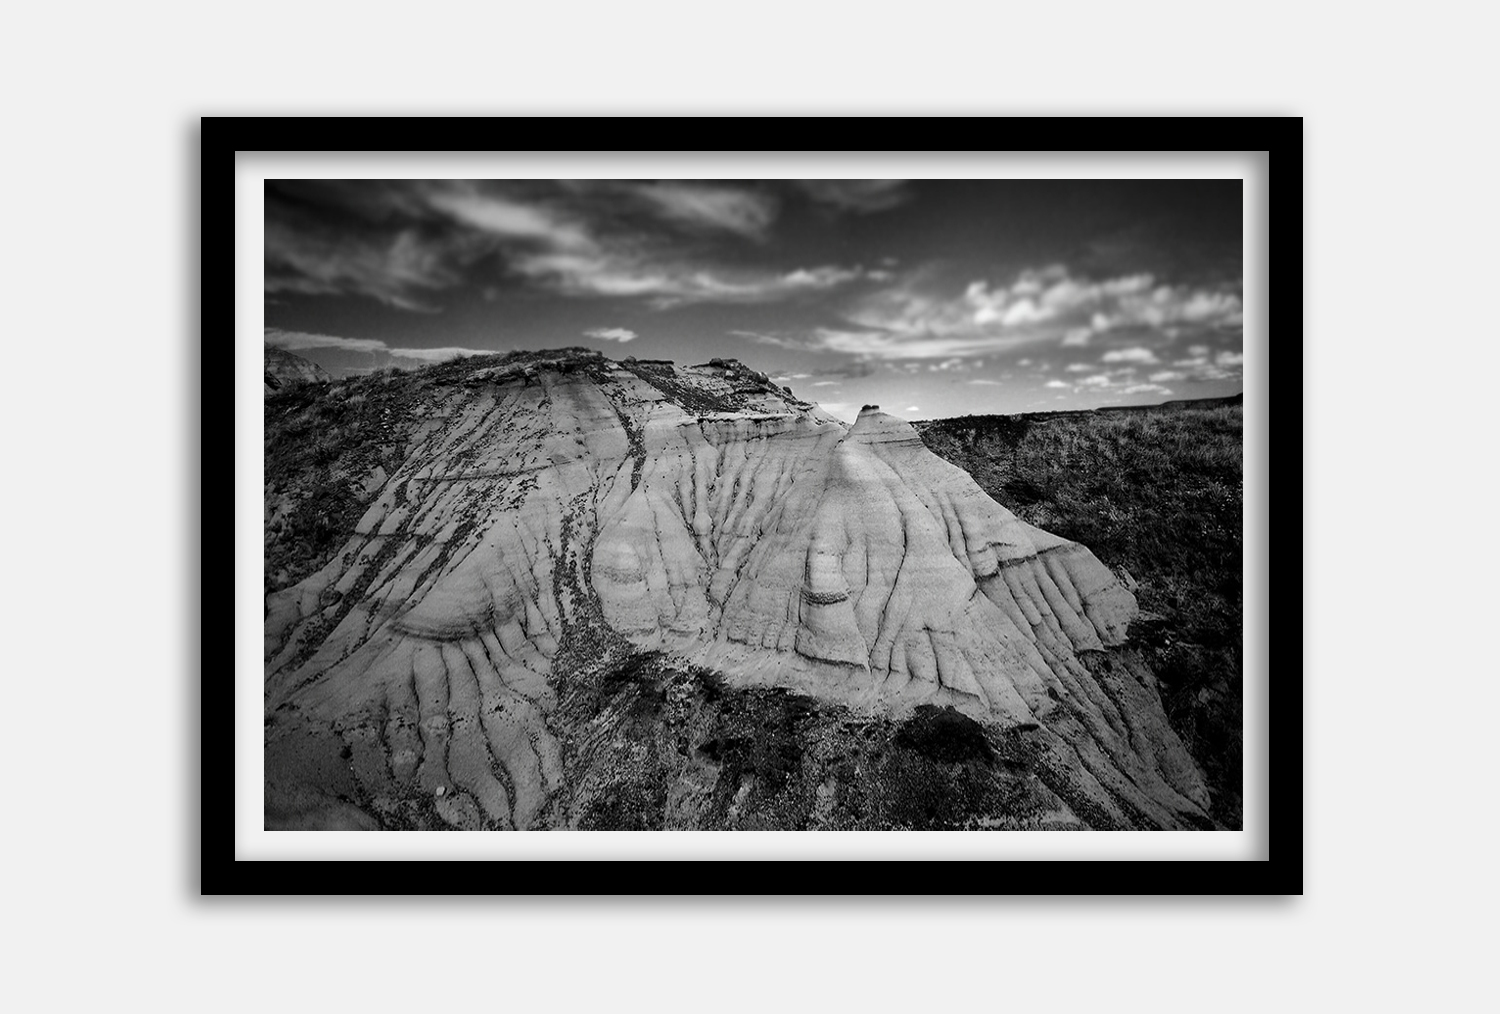 daxjustin-prints-SeriesBadlands-no5